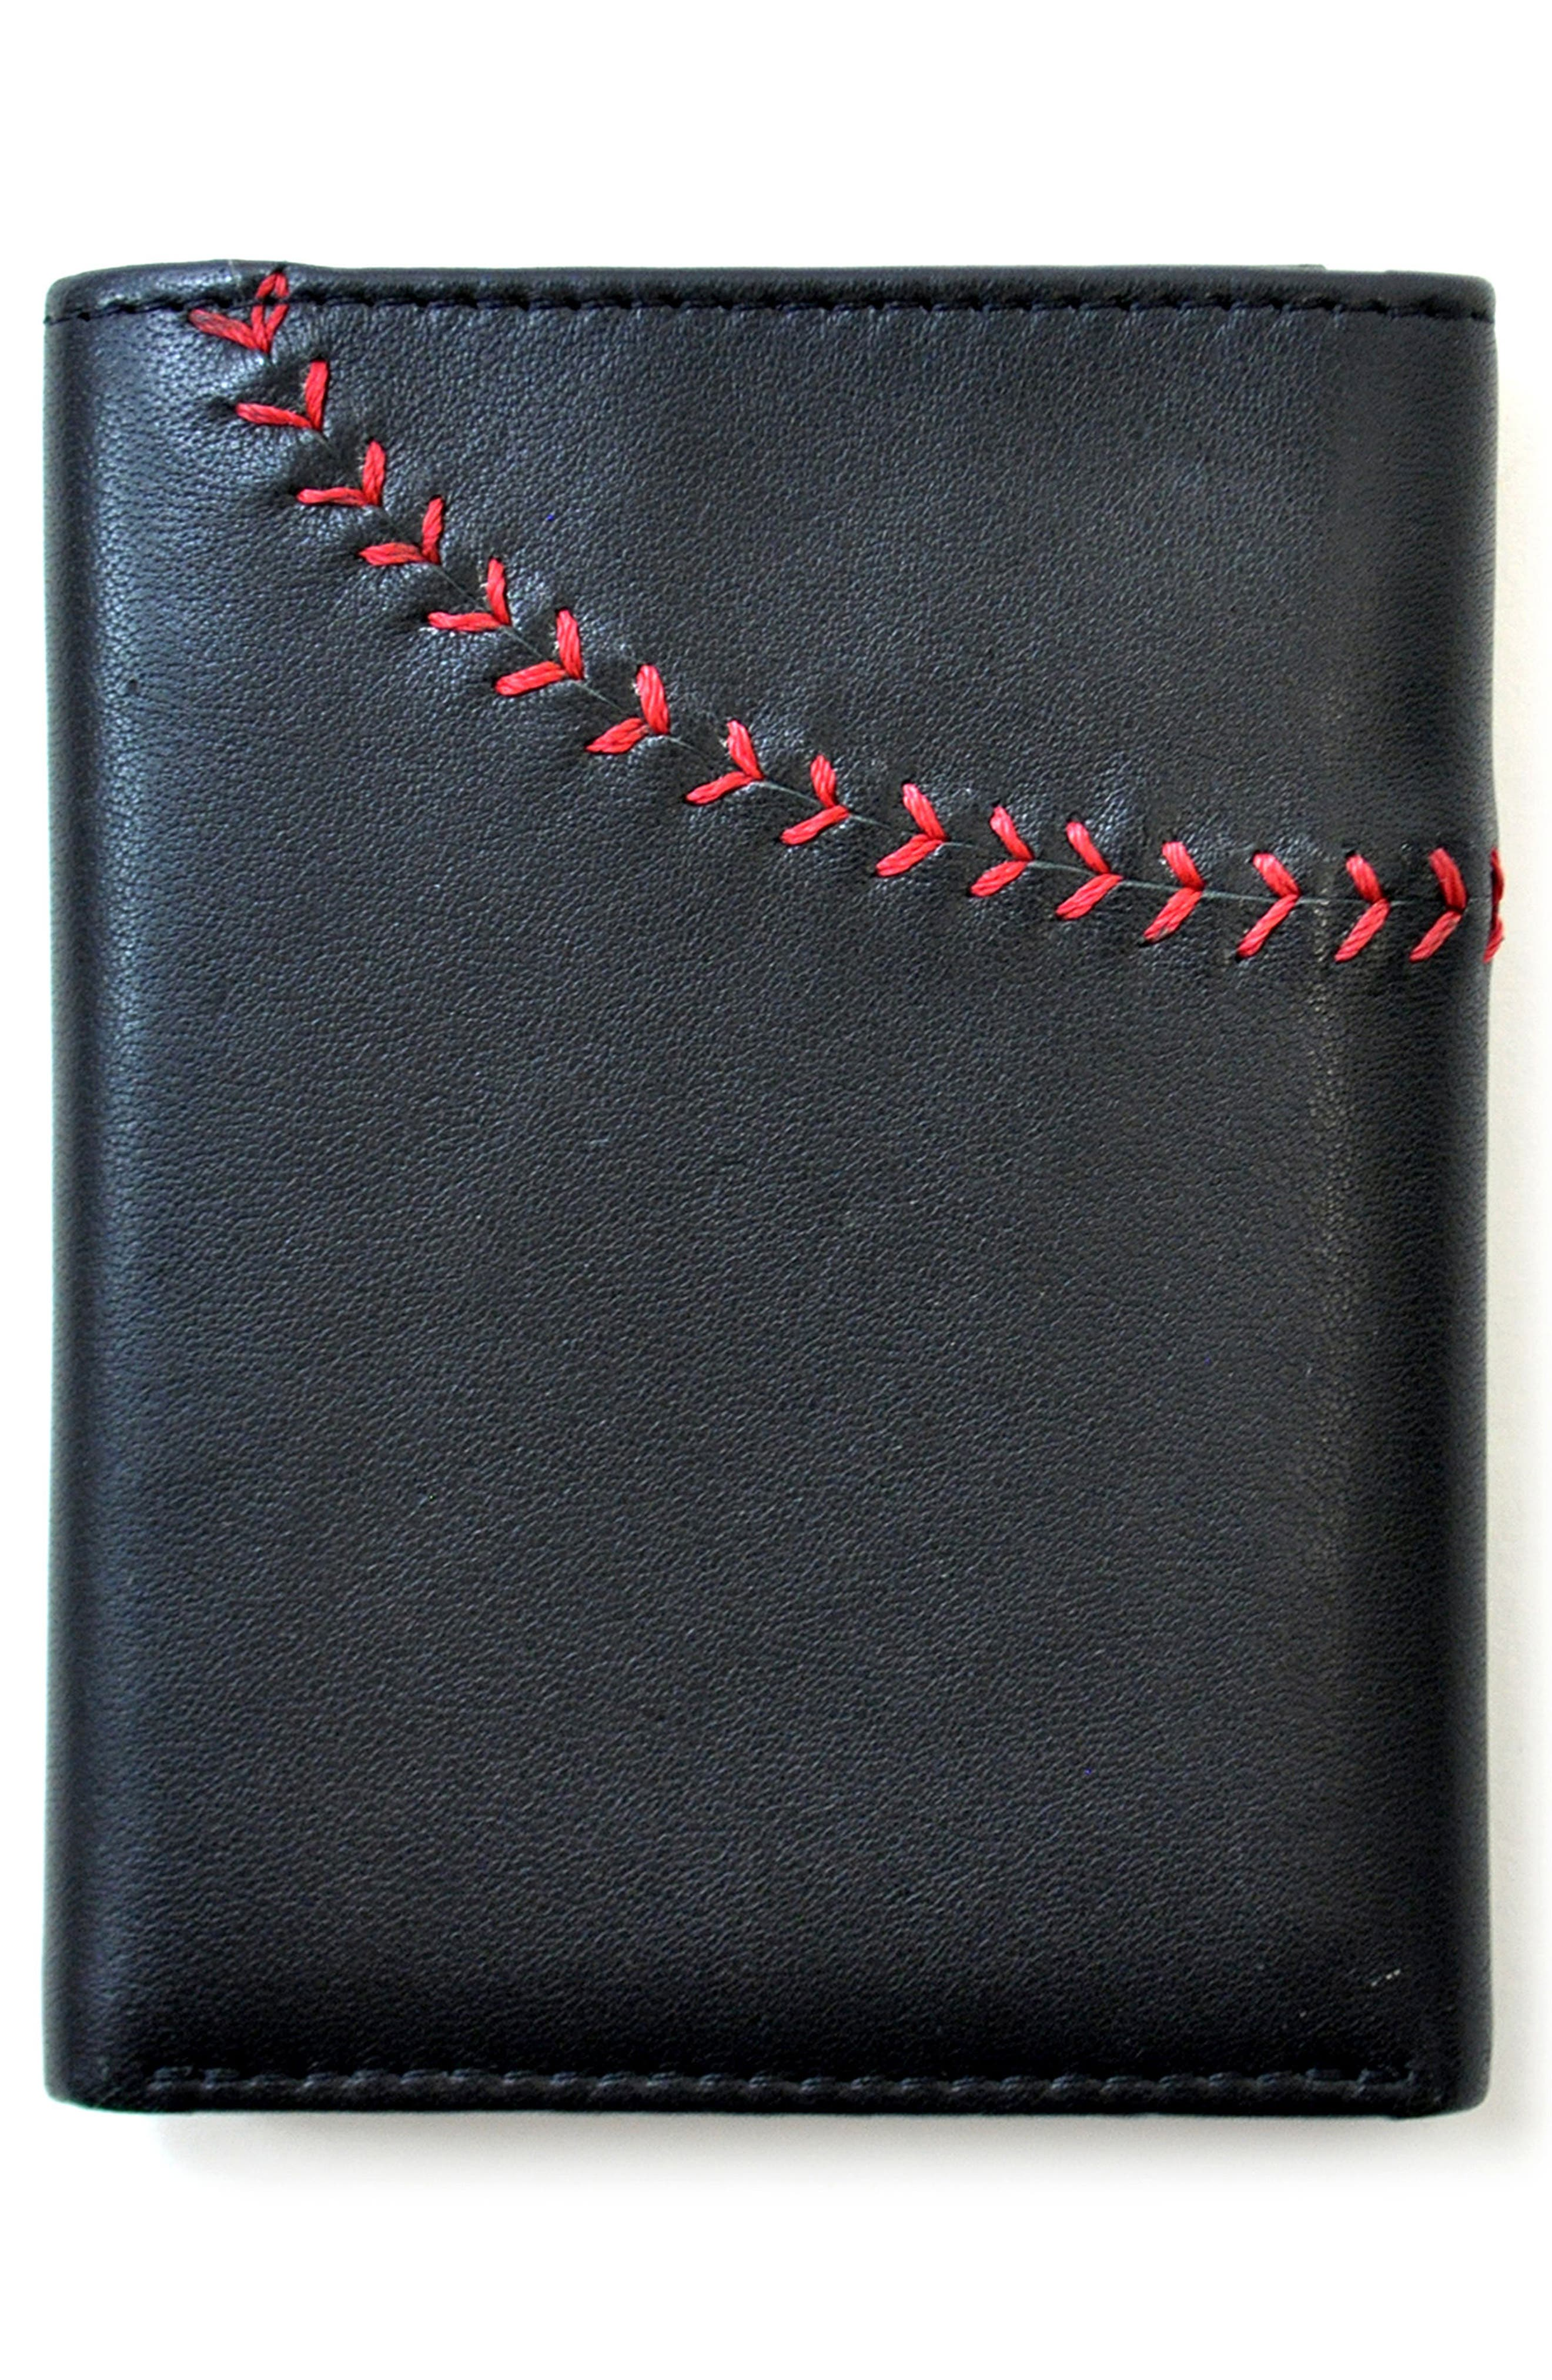 Baseball Stitch Leather Trifold Wallet,                             Alternate thumbnail 4, color,                             001